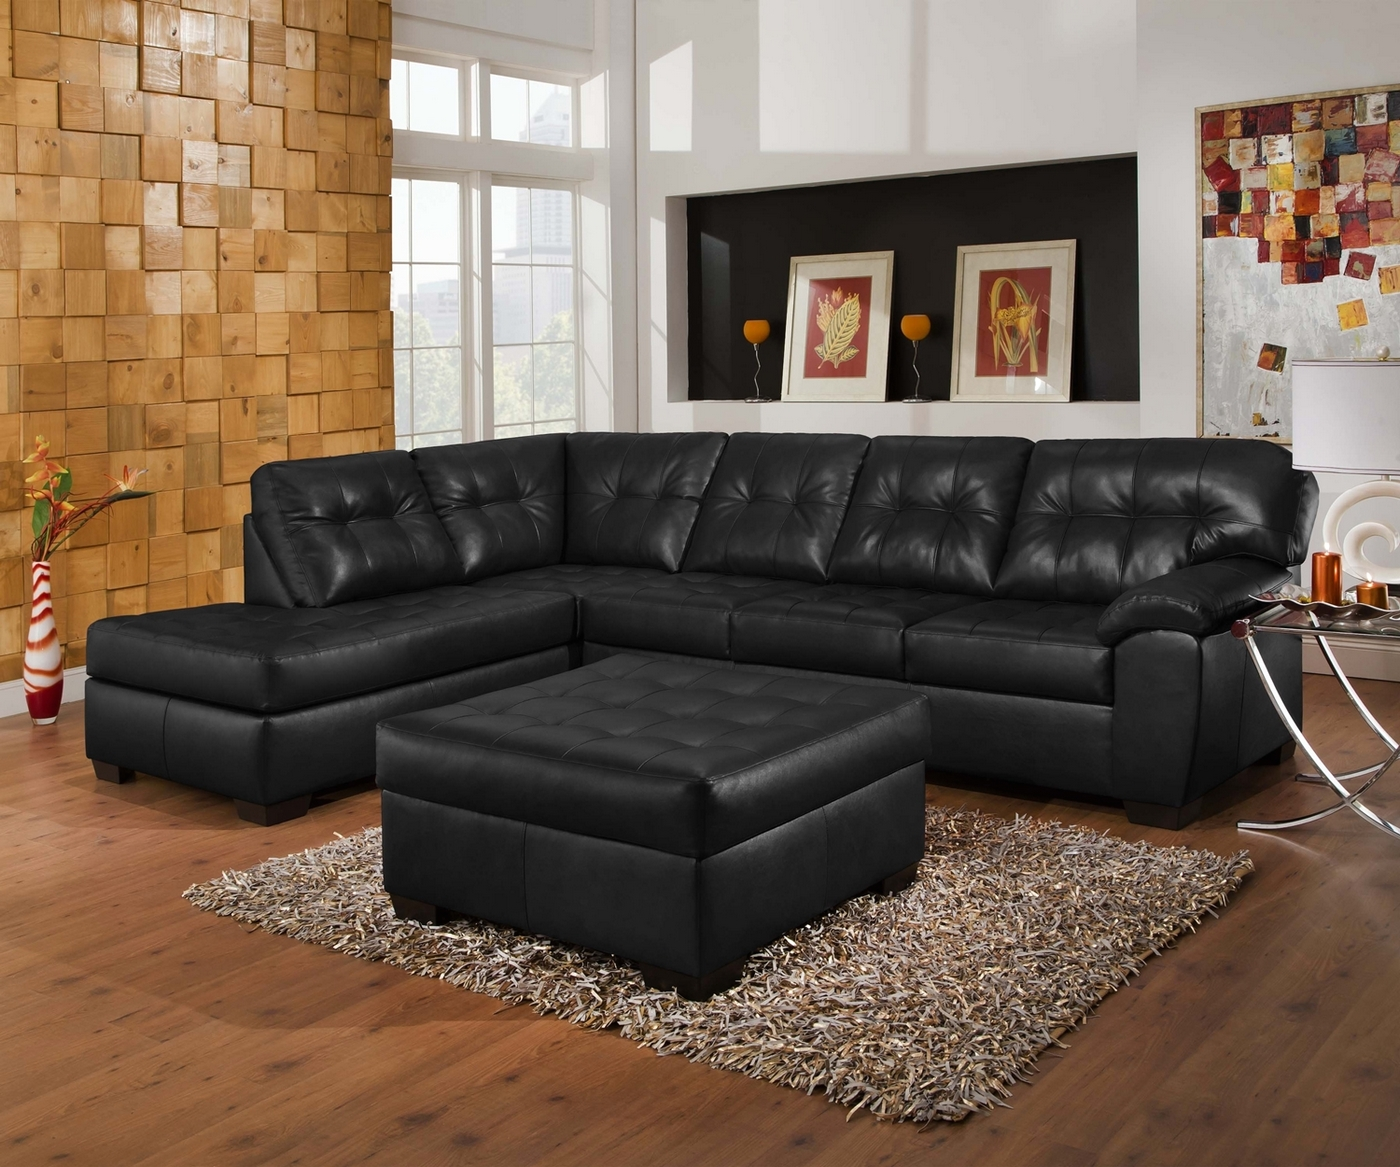 Soho contemporary onyx leather sectional sofa w left chaise for Bonded leather chaise